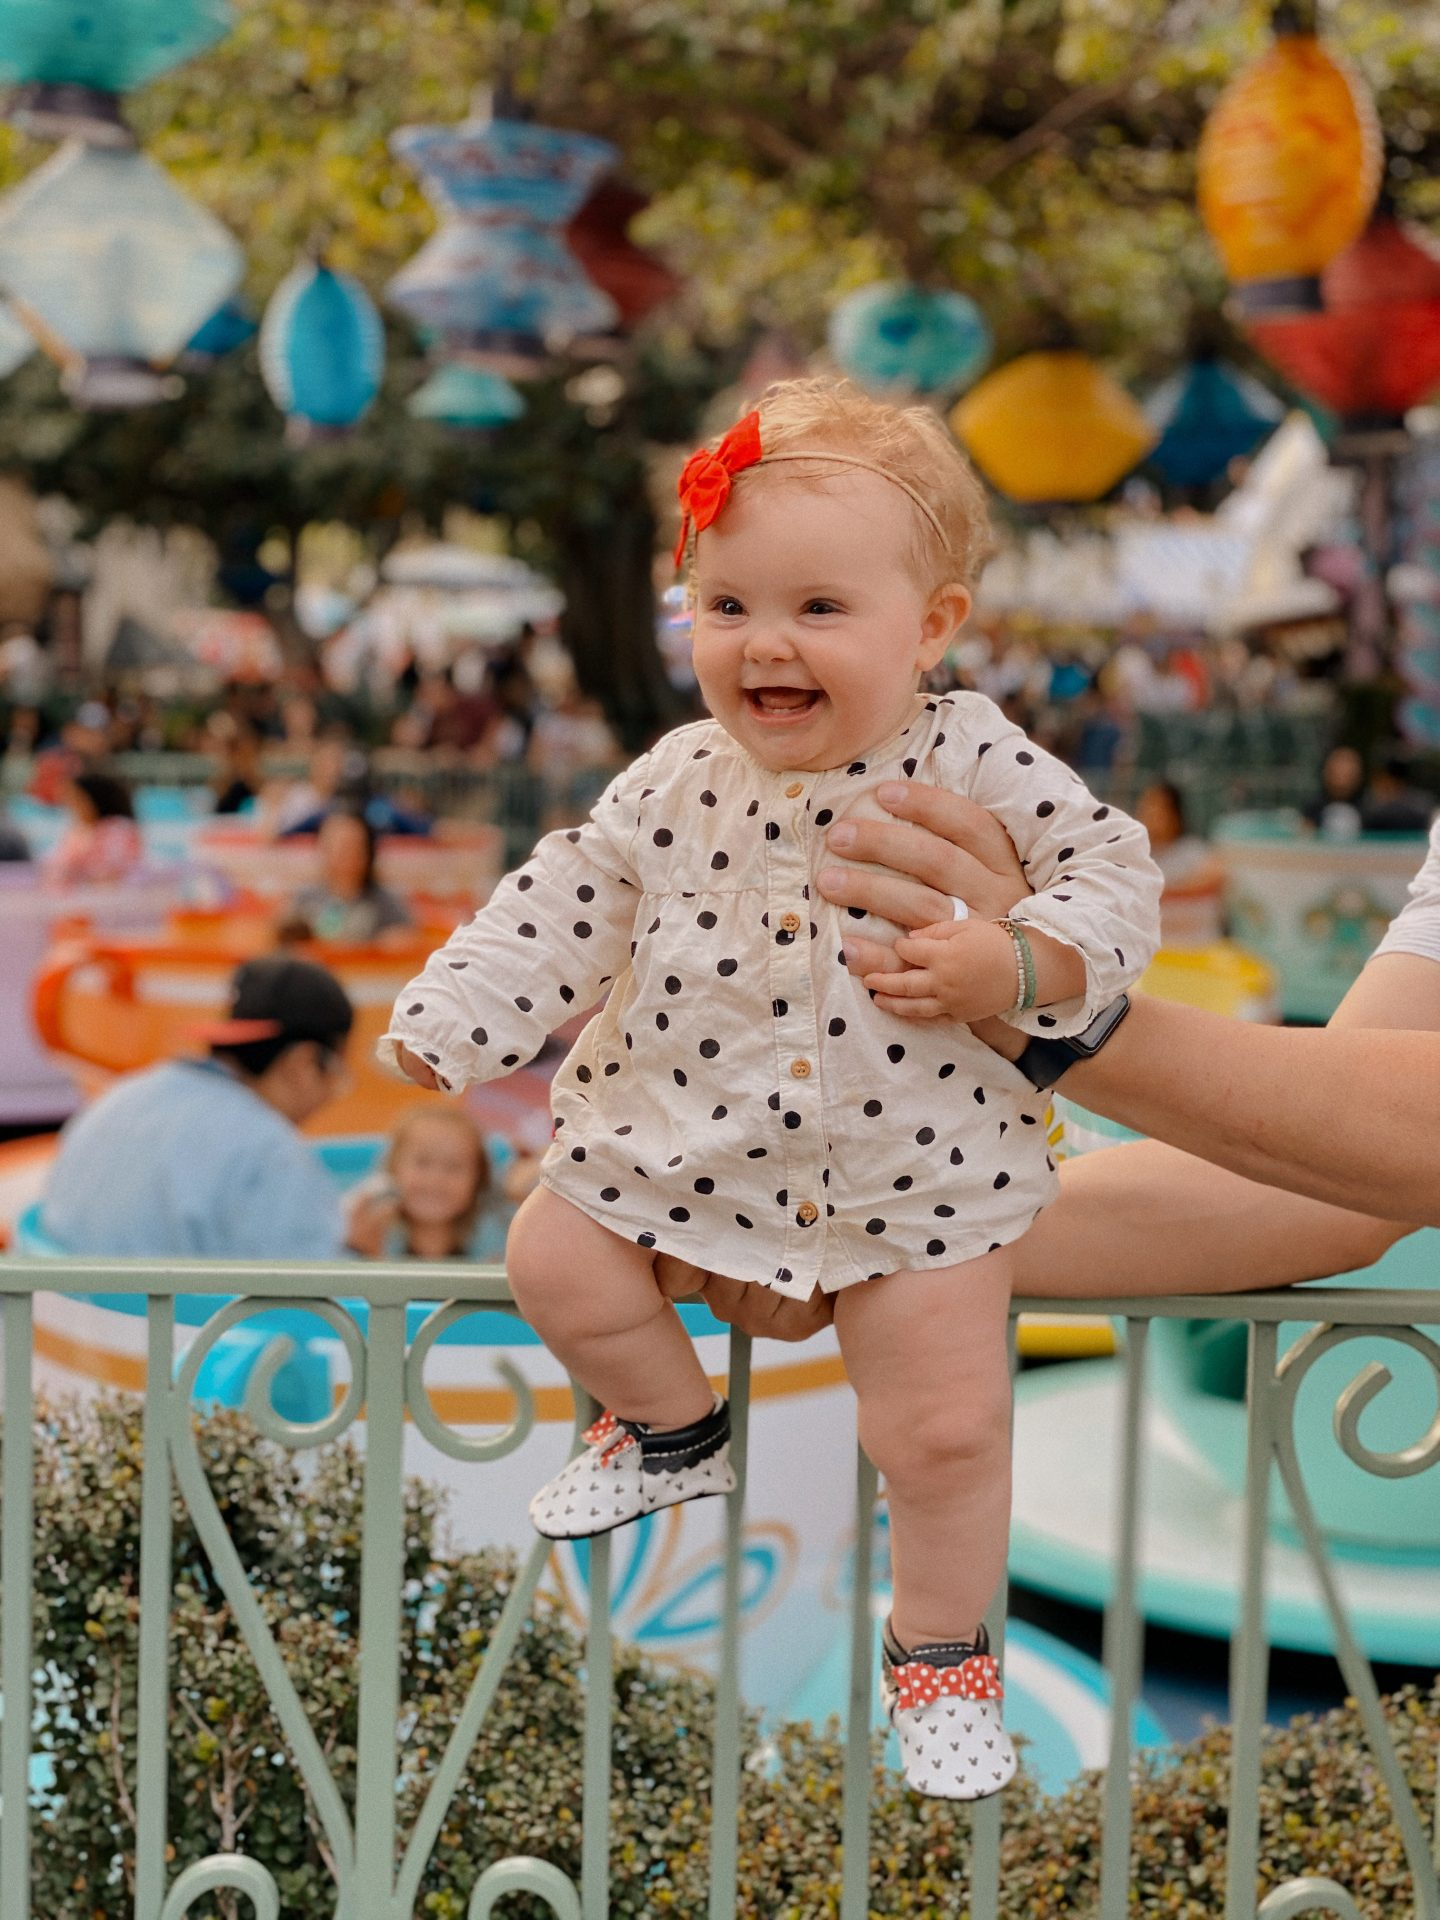 TOP 10 BEST DISNEYLAND TIPS FOR YOUR FAMILY featured by top San Diego blog, Navy Grace | Disneyland Tips by popular San Diego lifestyle blog, Navy Grace: image of a dad holding his baby girl in front of the tea cups ride at Disneyland.